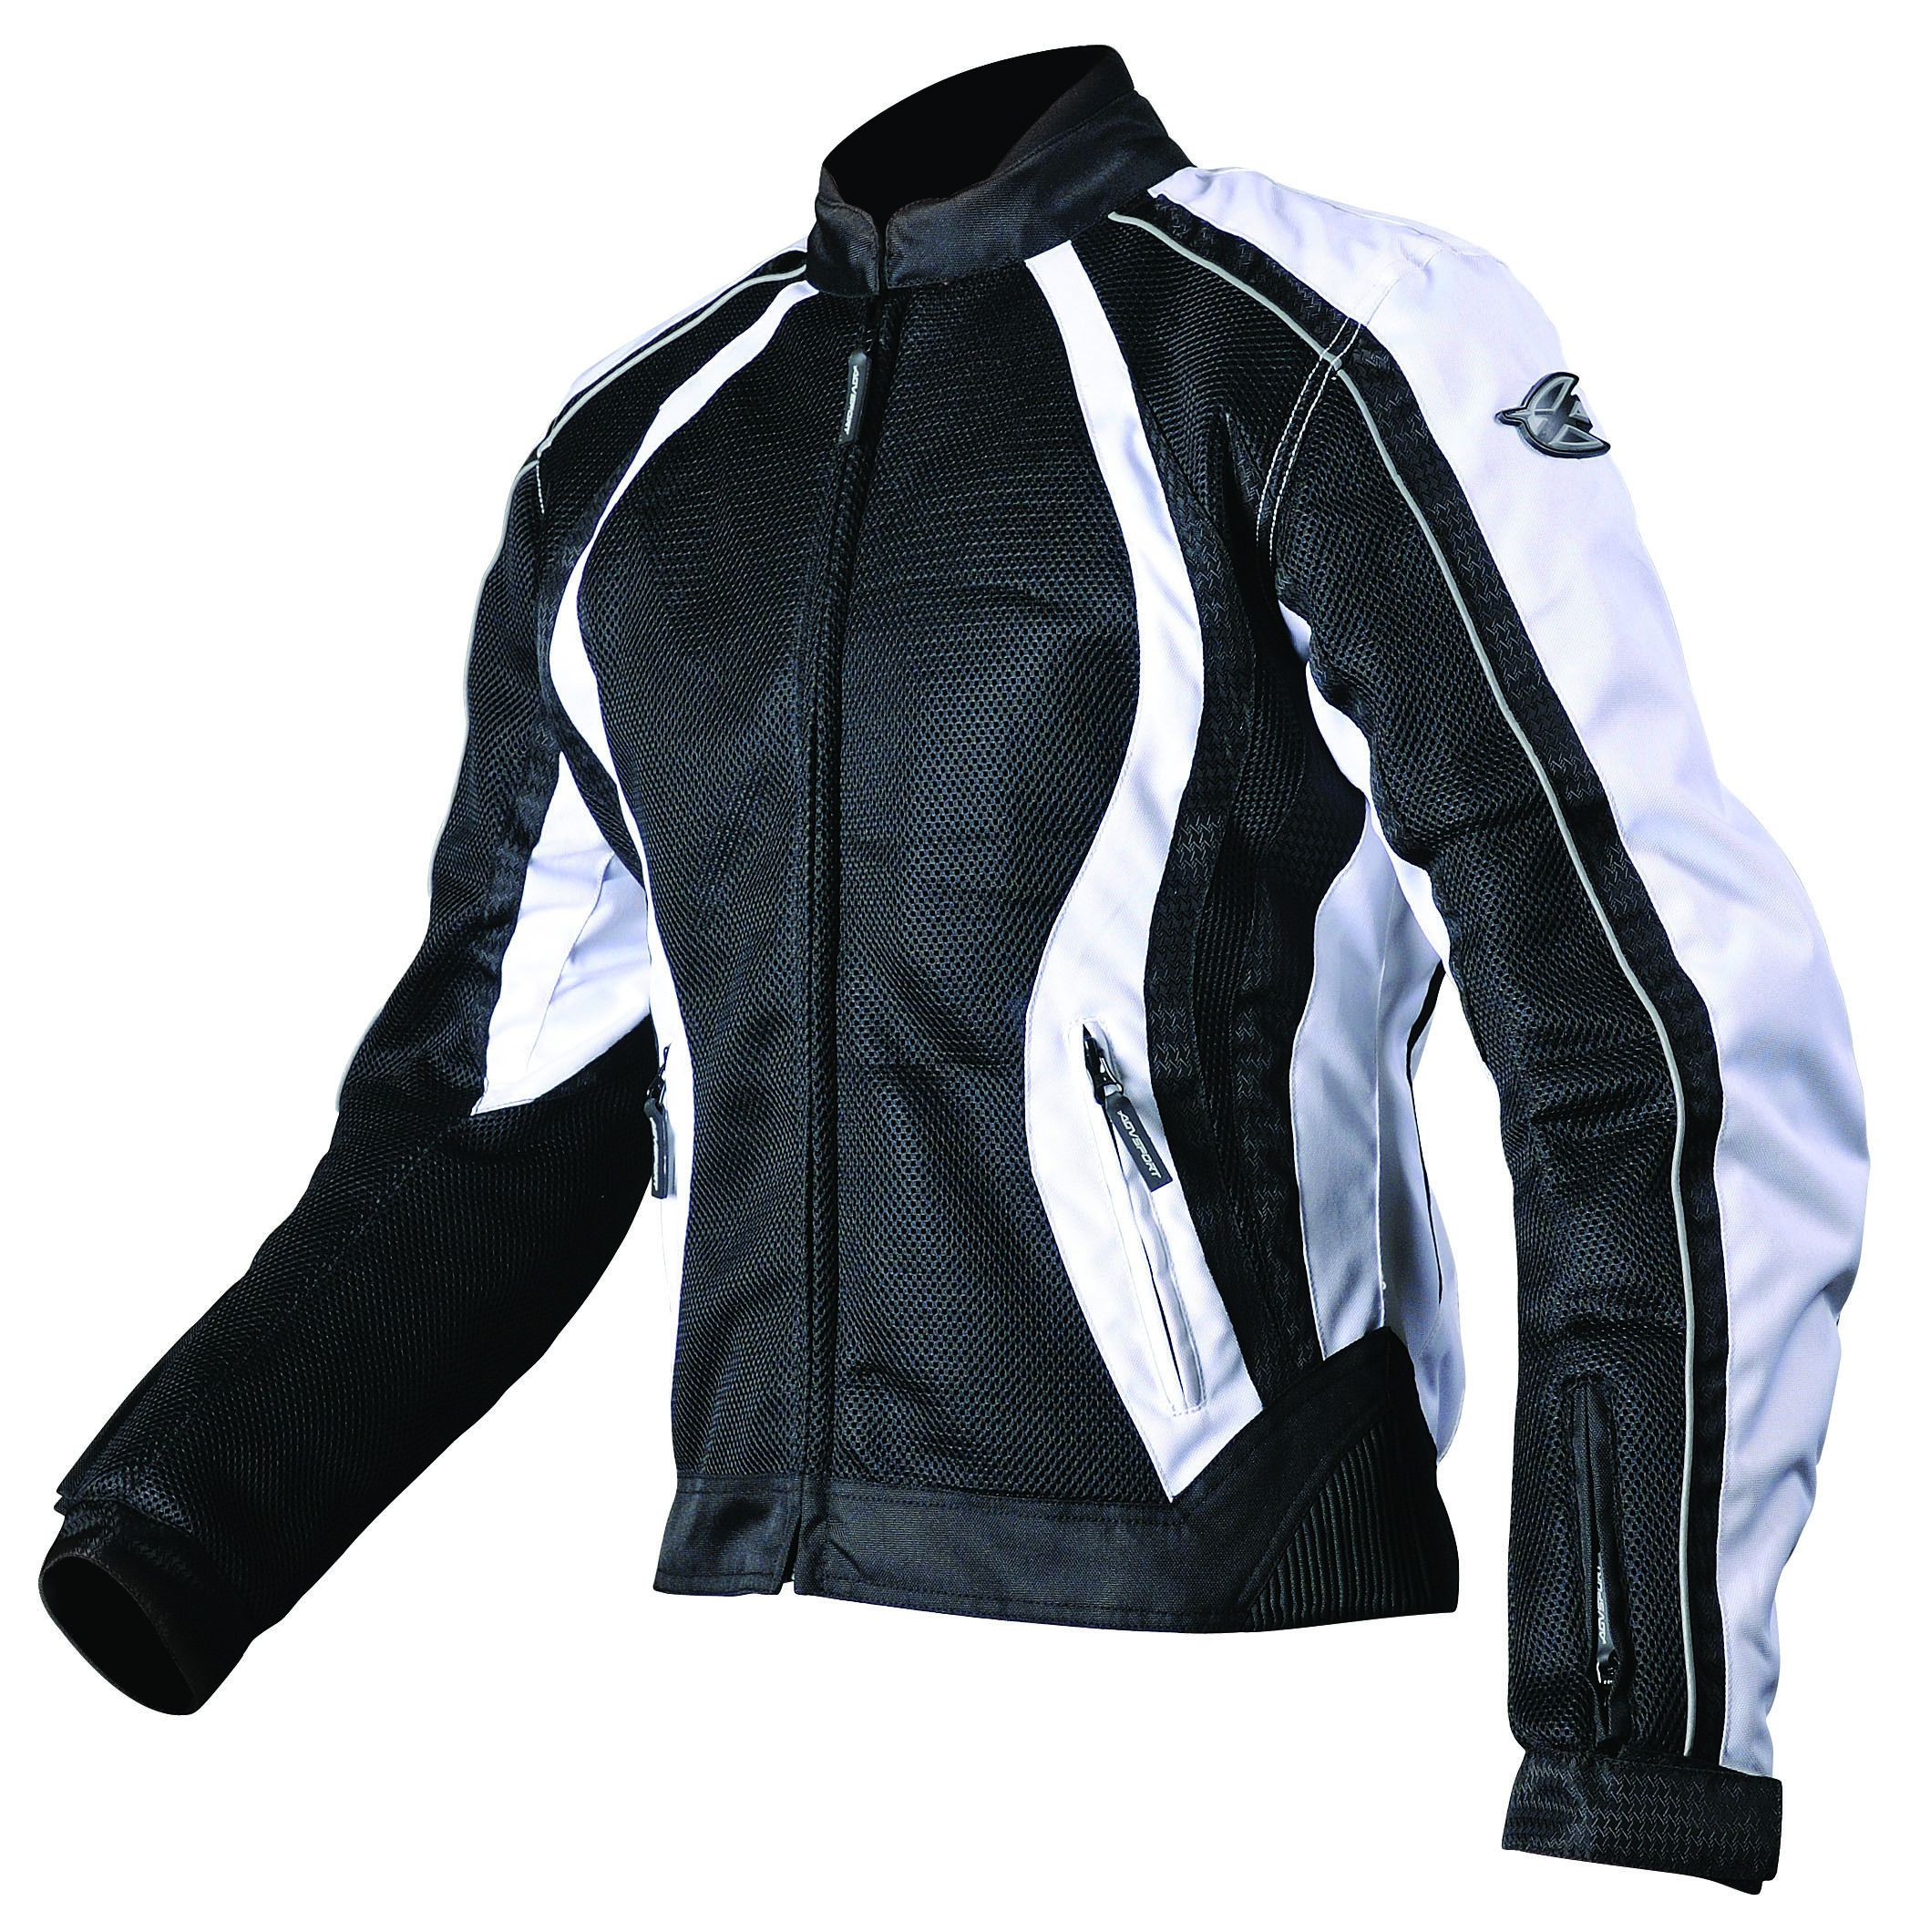 Sport jacket for women